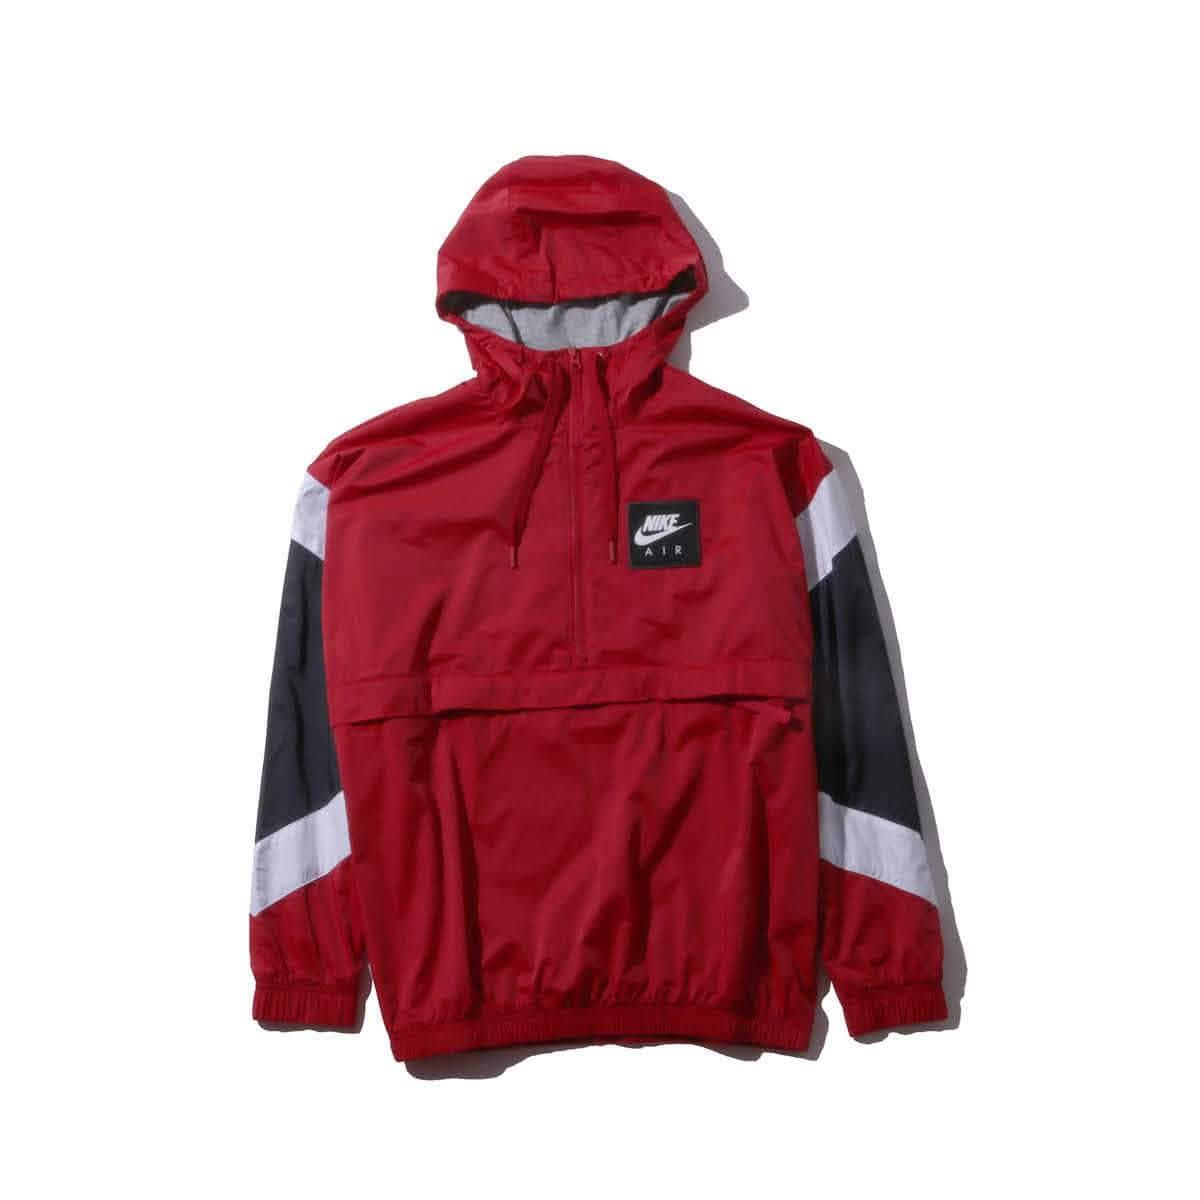 Nike Sportswear Jacket NSW AIR HD WVN Gym RedWhite